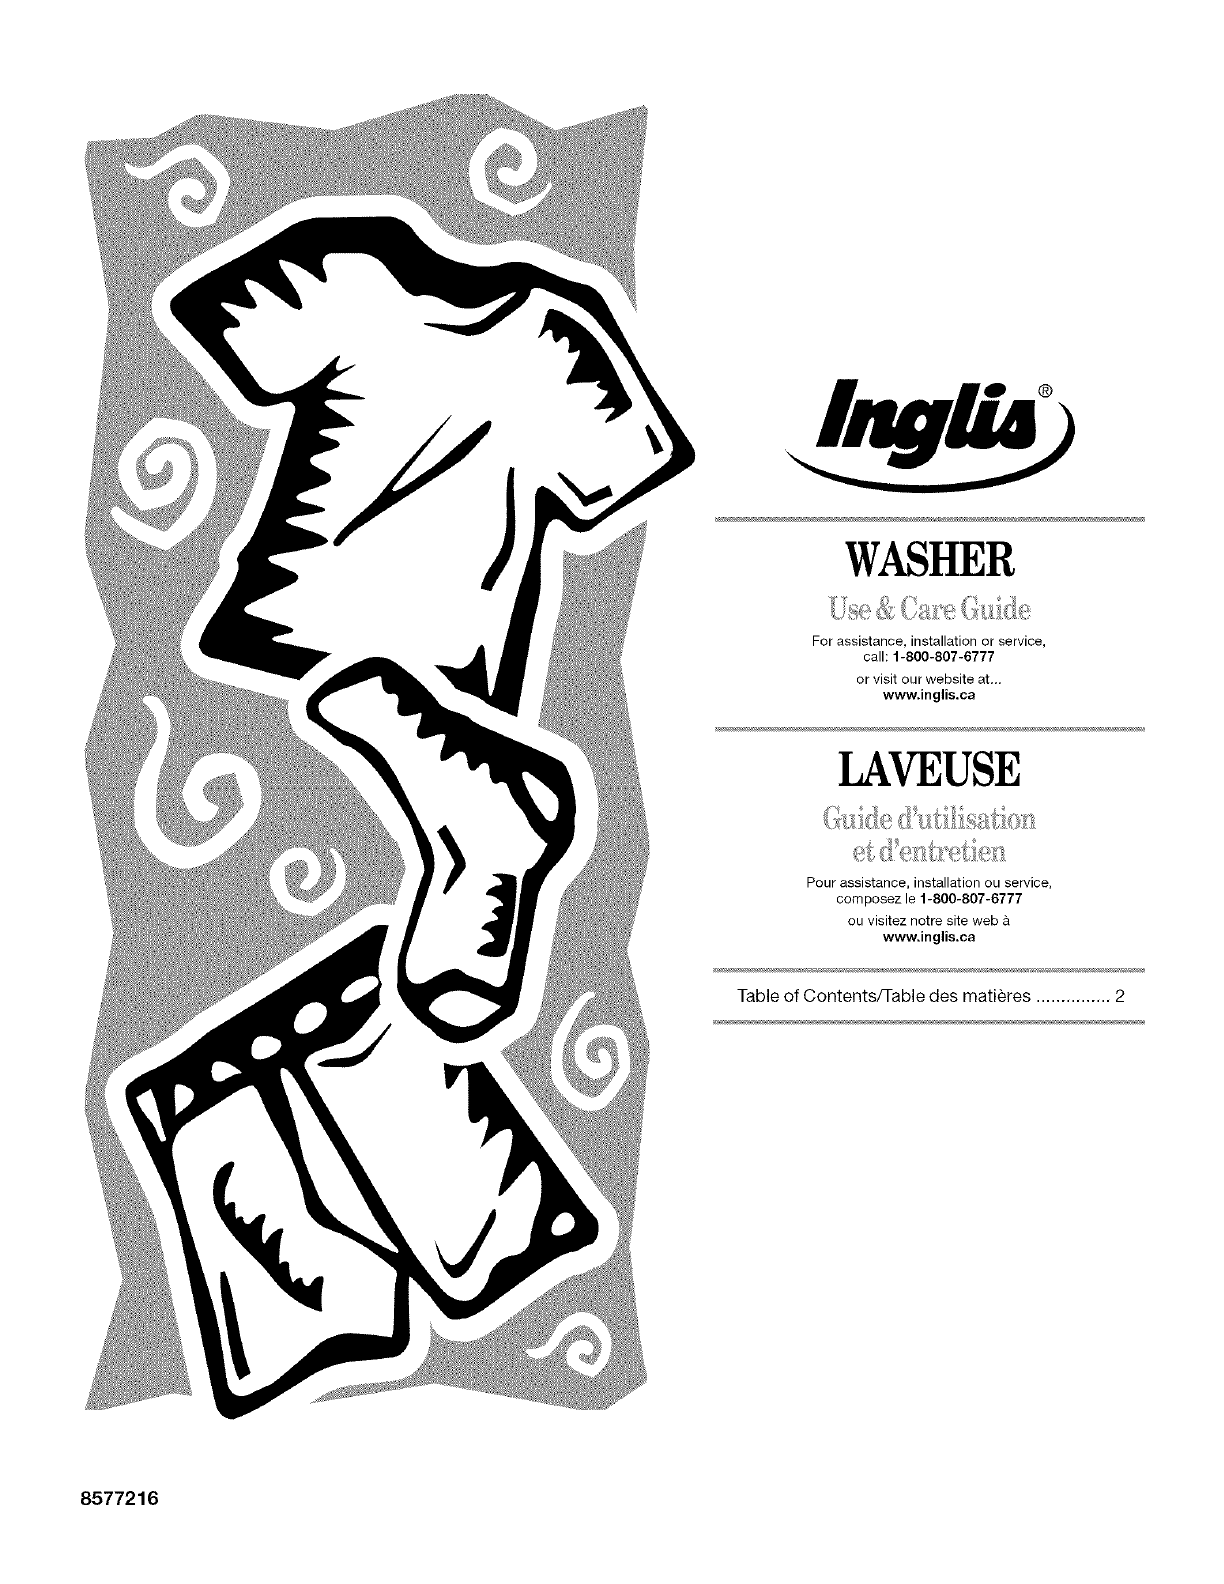 Inglis Home Appliances Washer Washer User Guide